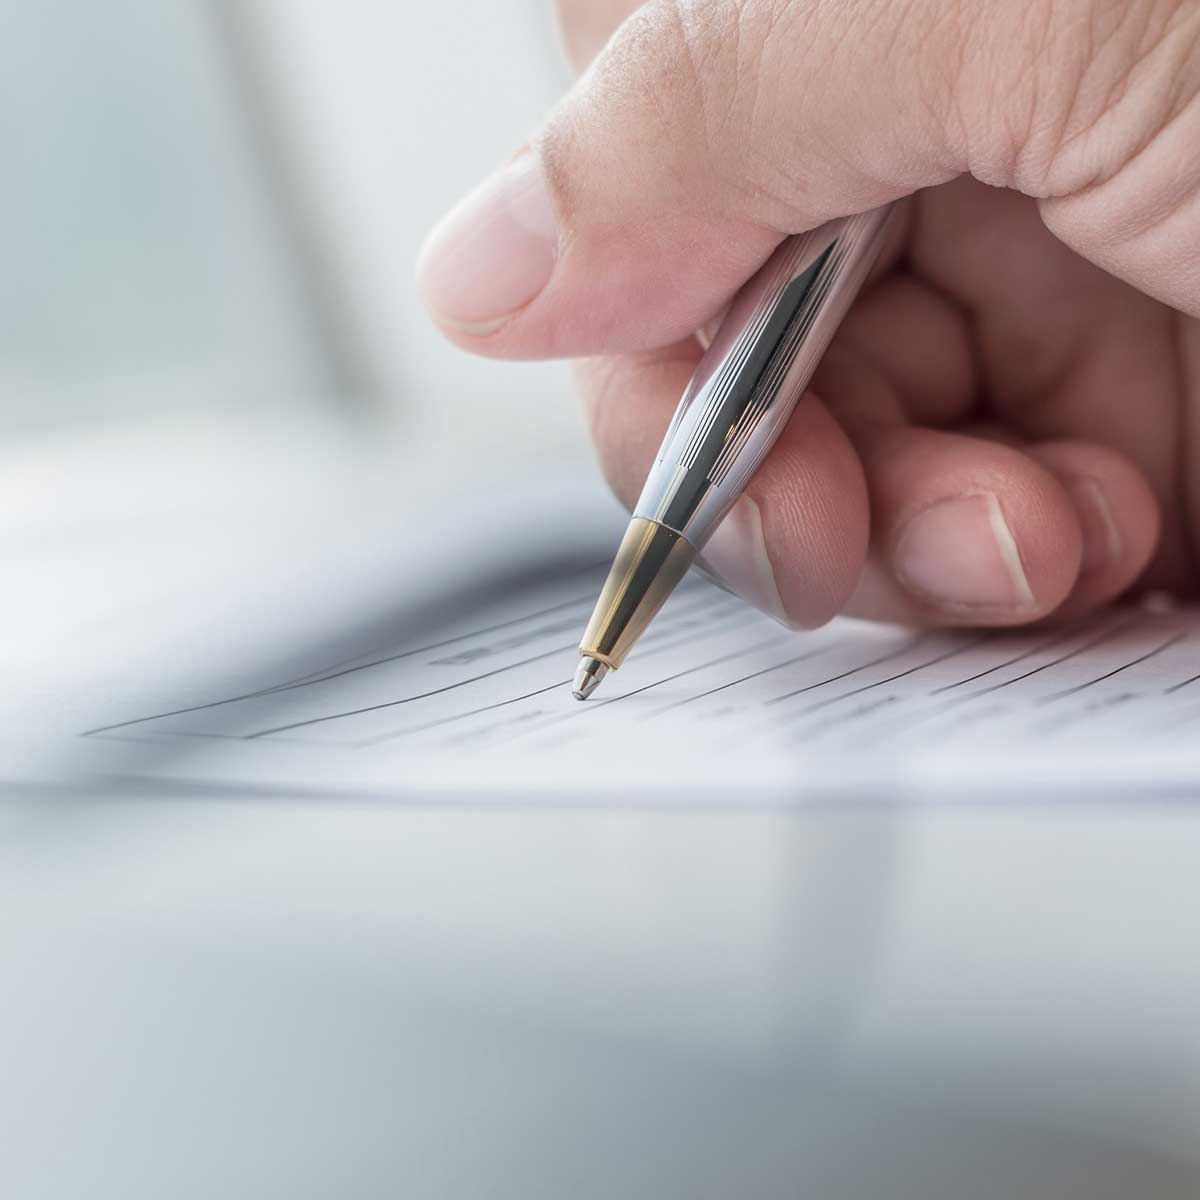 employer writing on a form with a pen. close up of hand and form